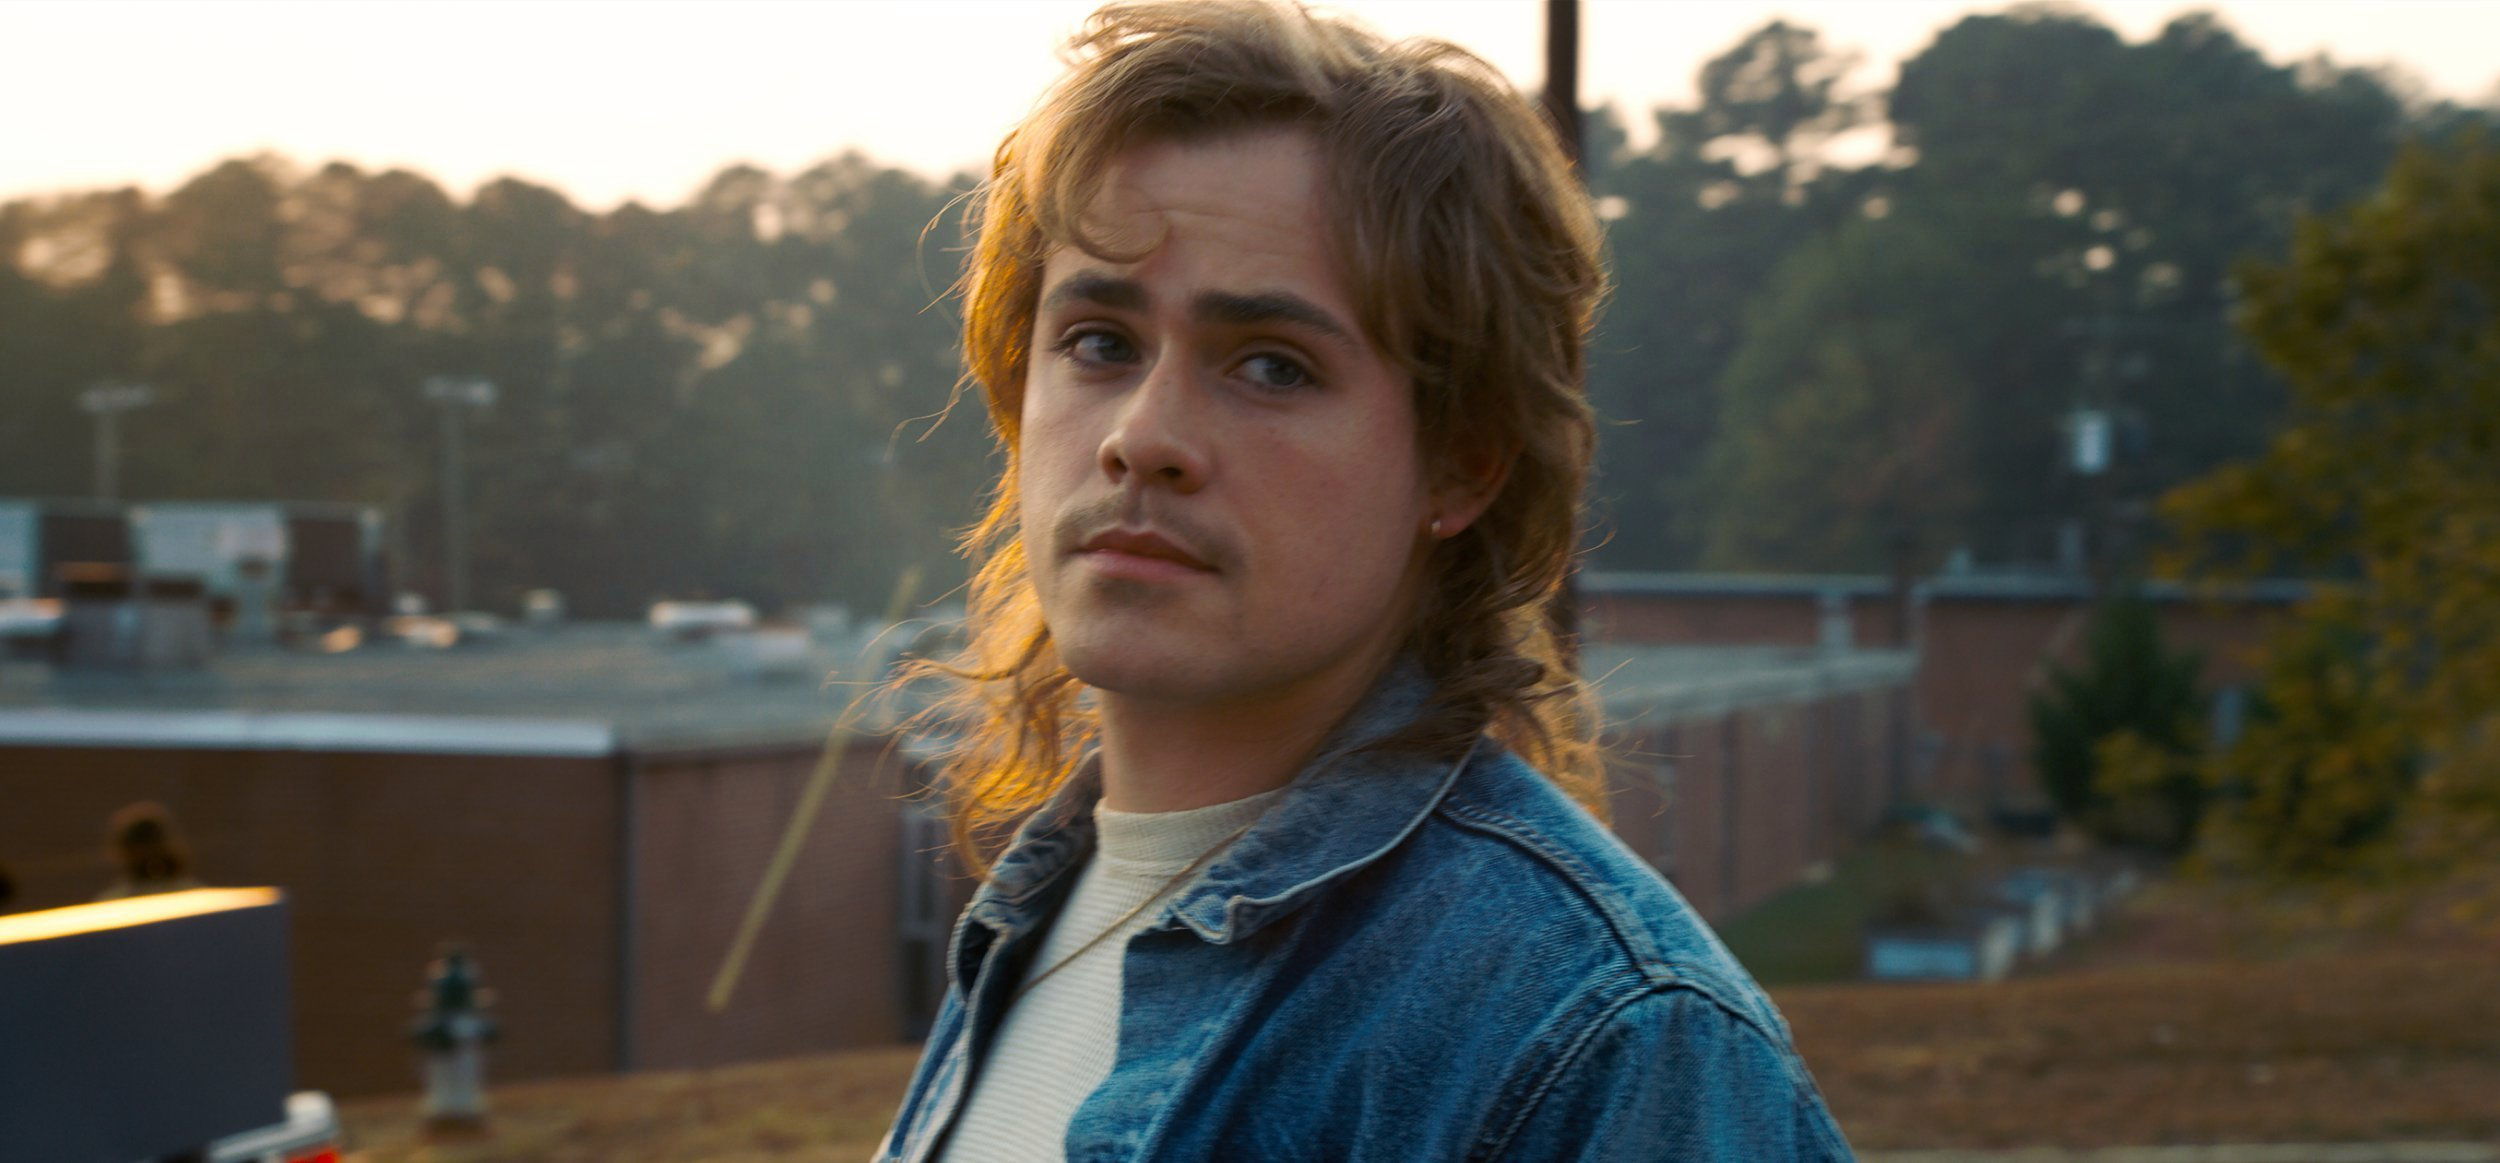 Stranger Things season 3: Billy's character goes from menacing to sinister